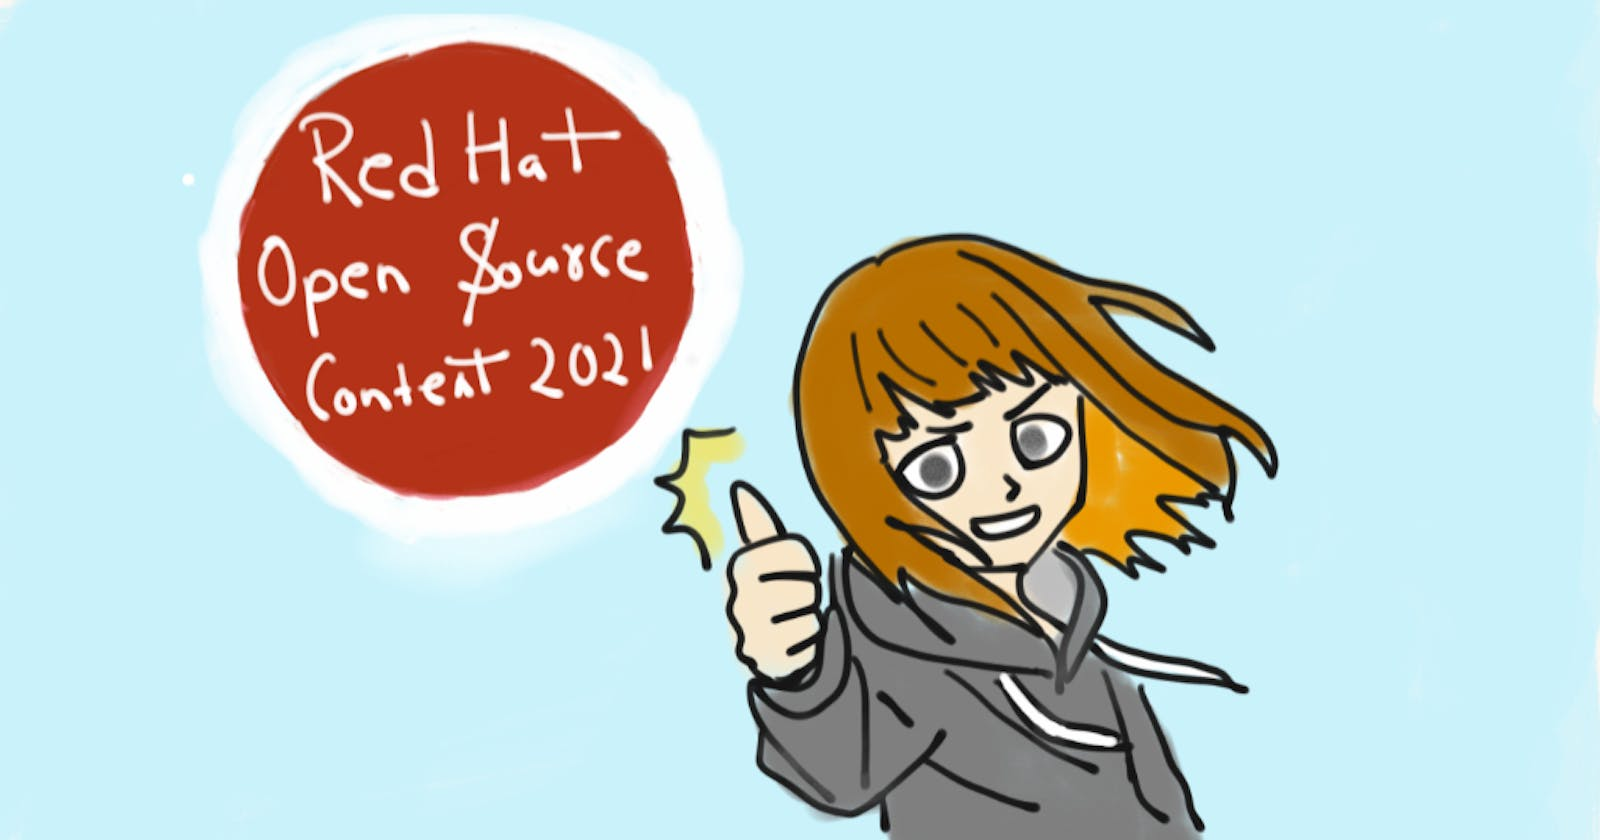 My Red Hat Open Source Contest 2021 journey